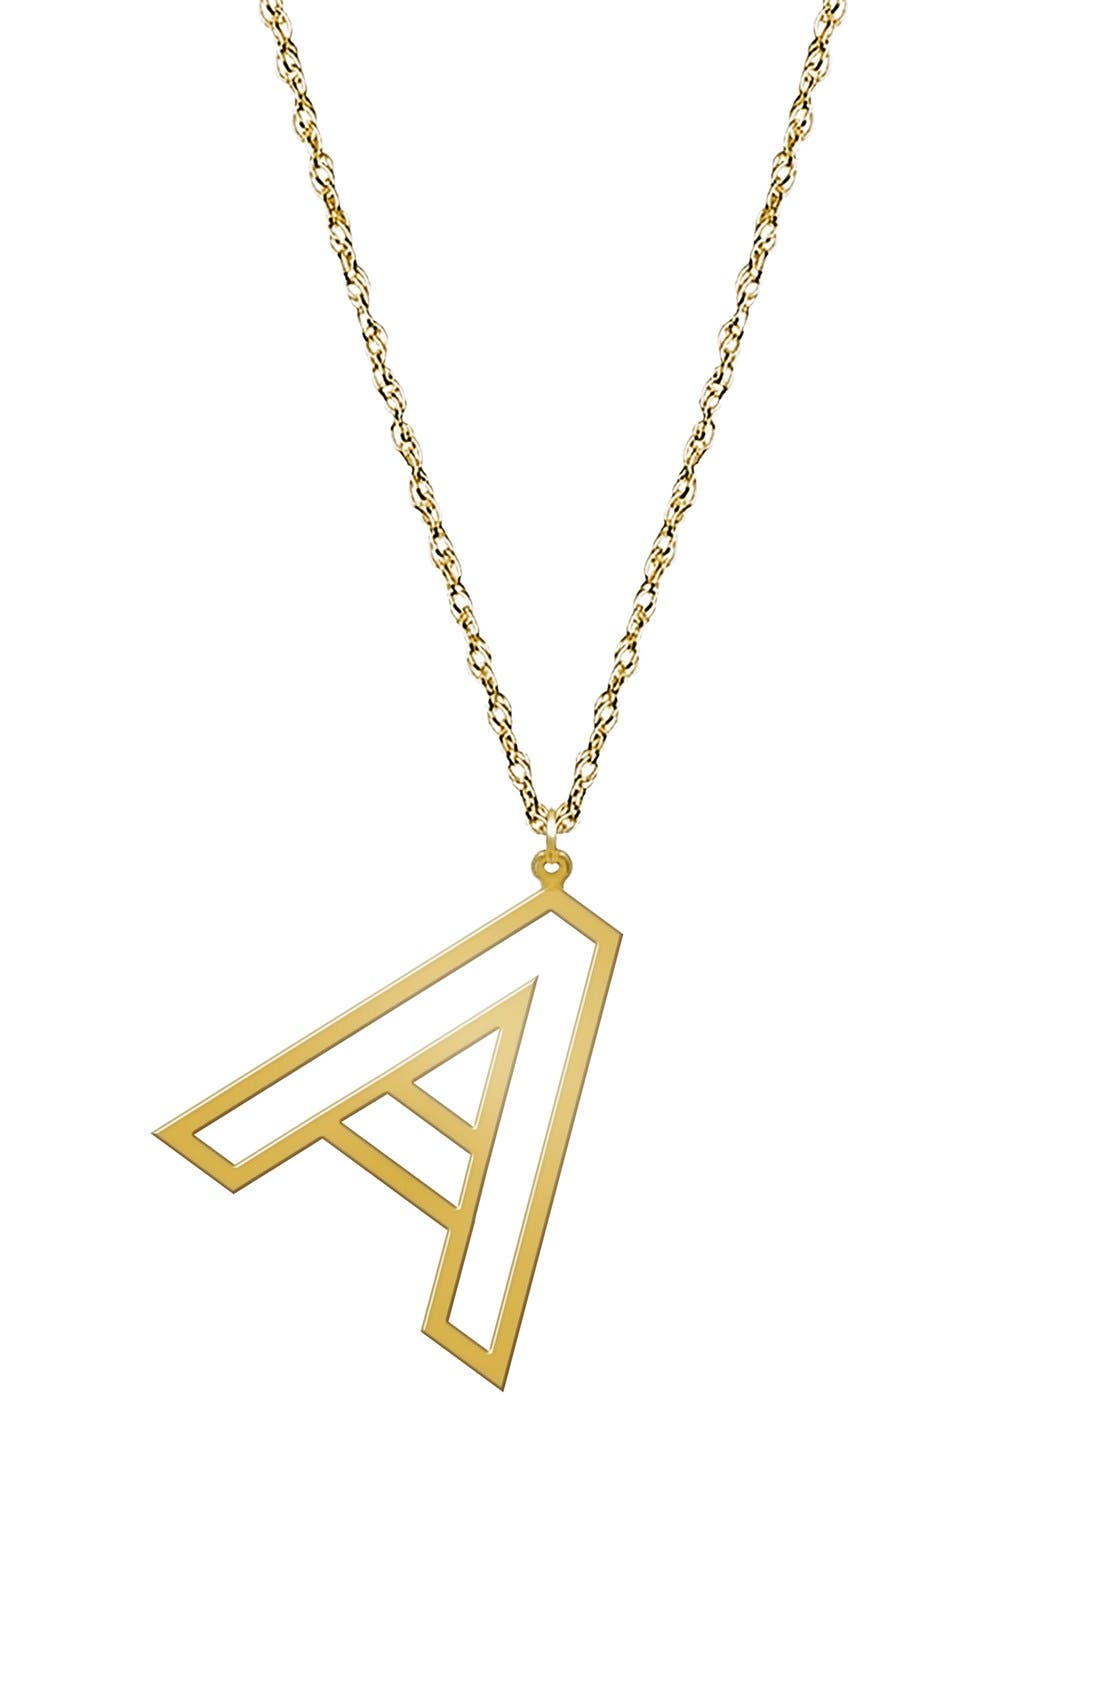 Varsity Initial Pendant Necklace,                         Main,                         color, GOLD - A